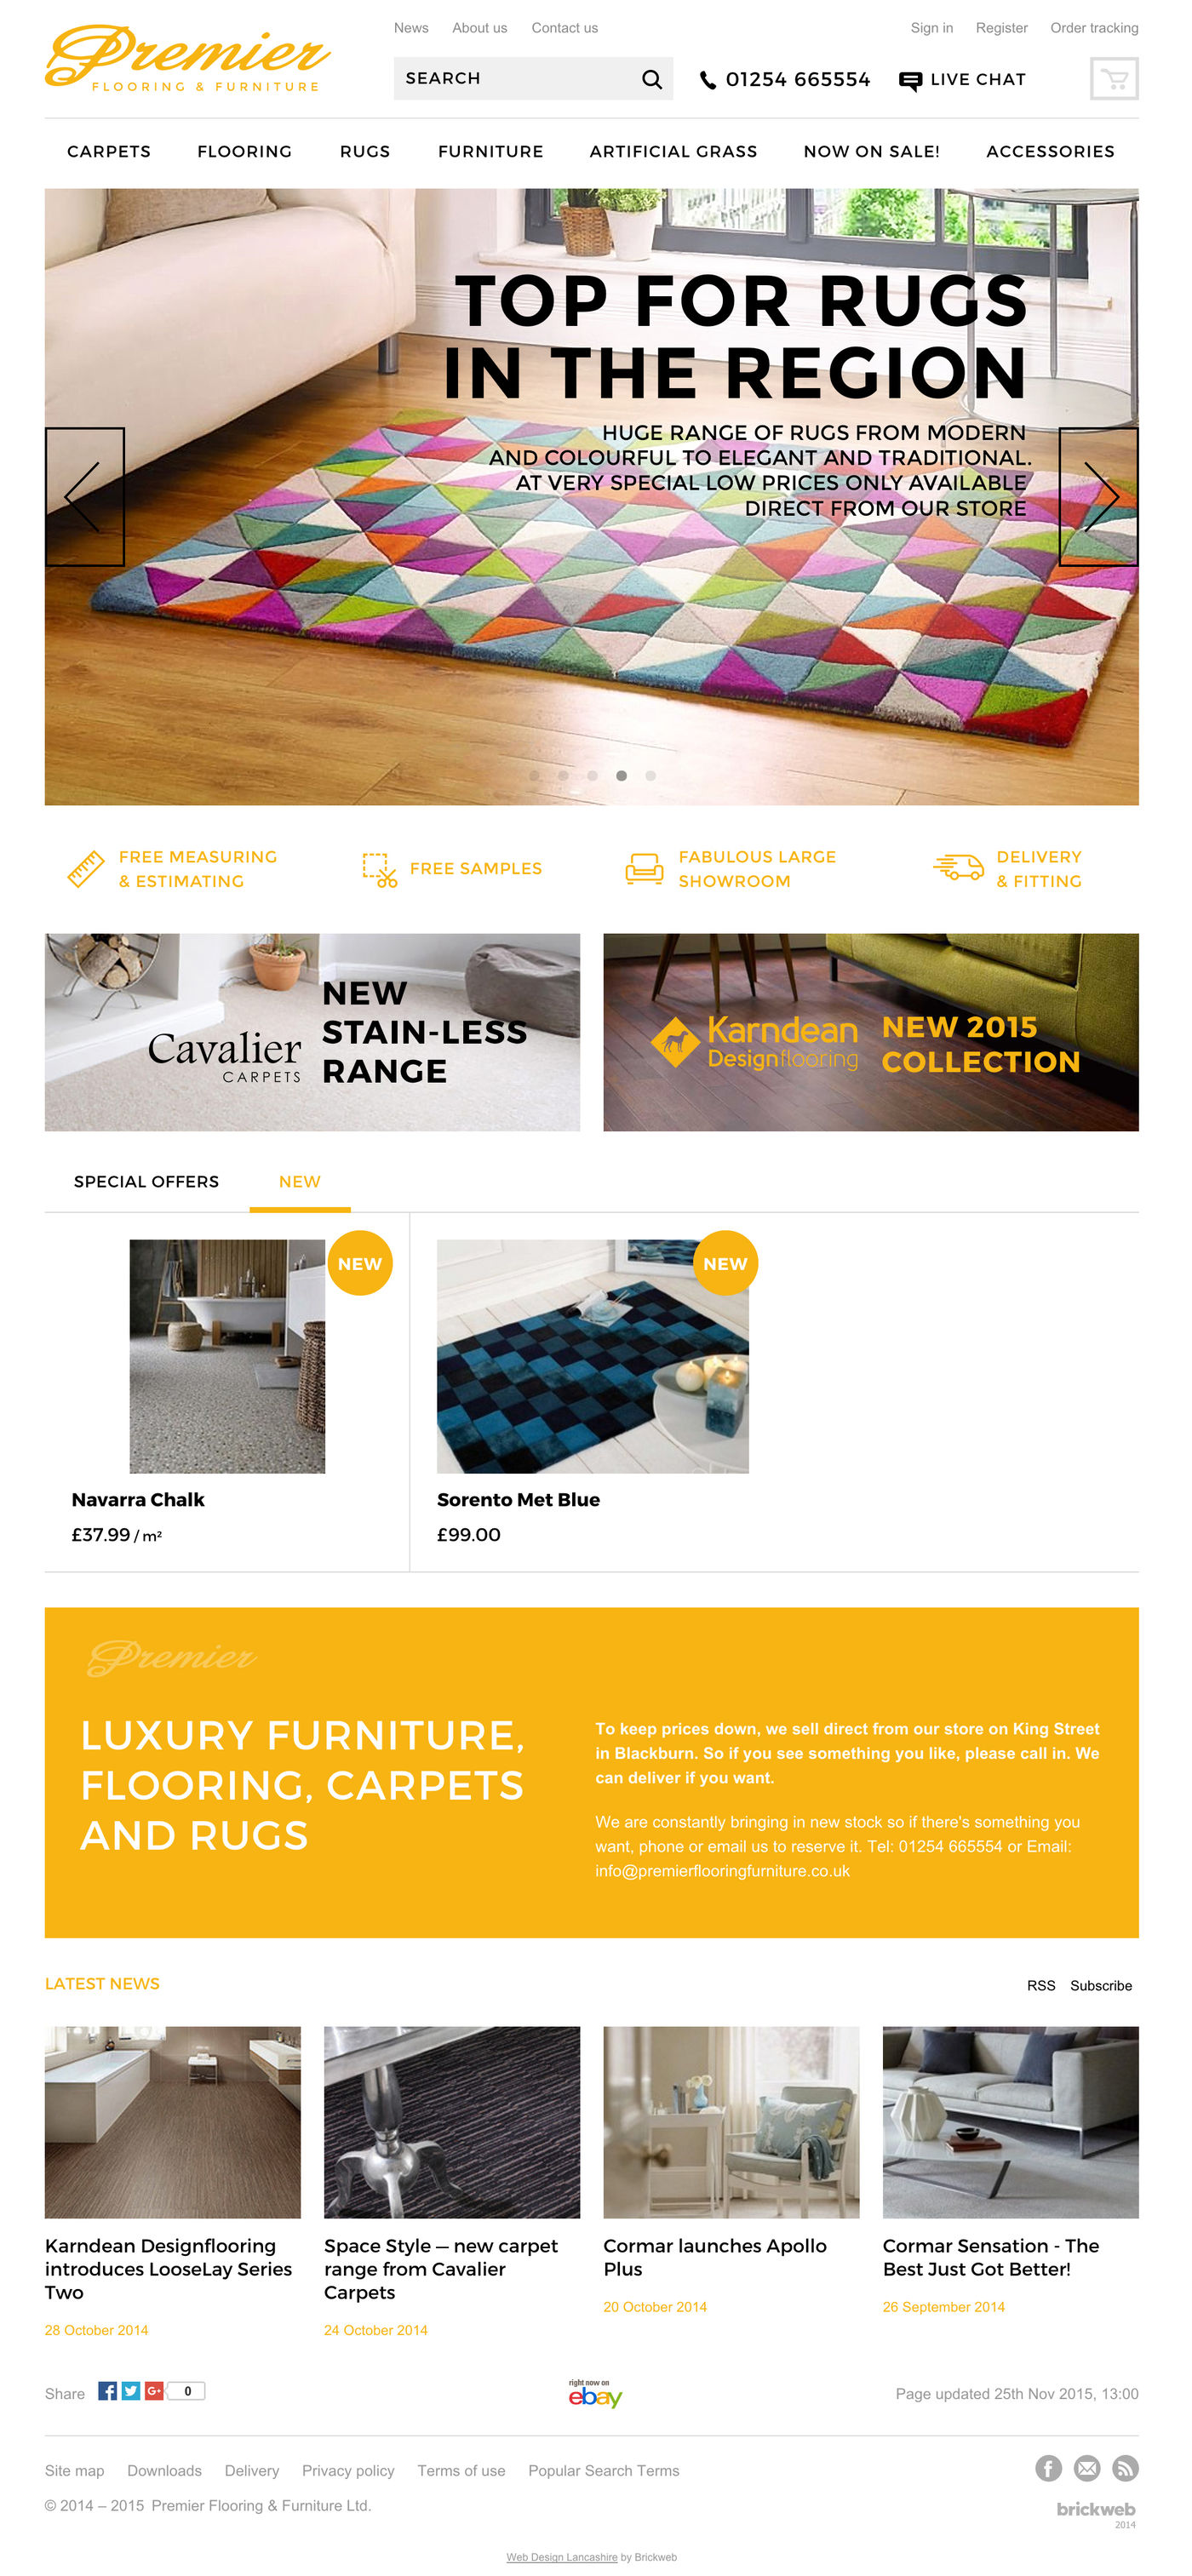 Premier Flooring & Furniture Ltd Homepage